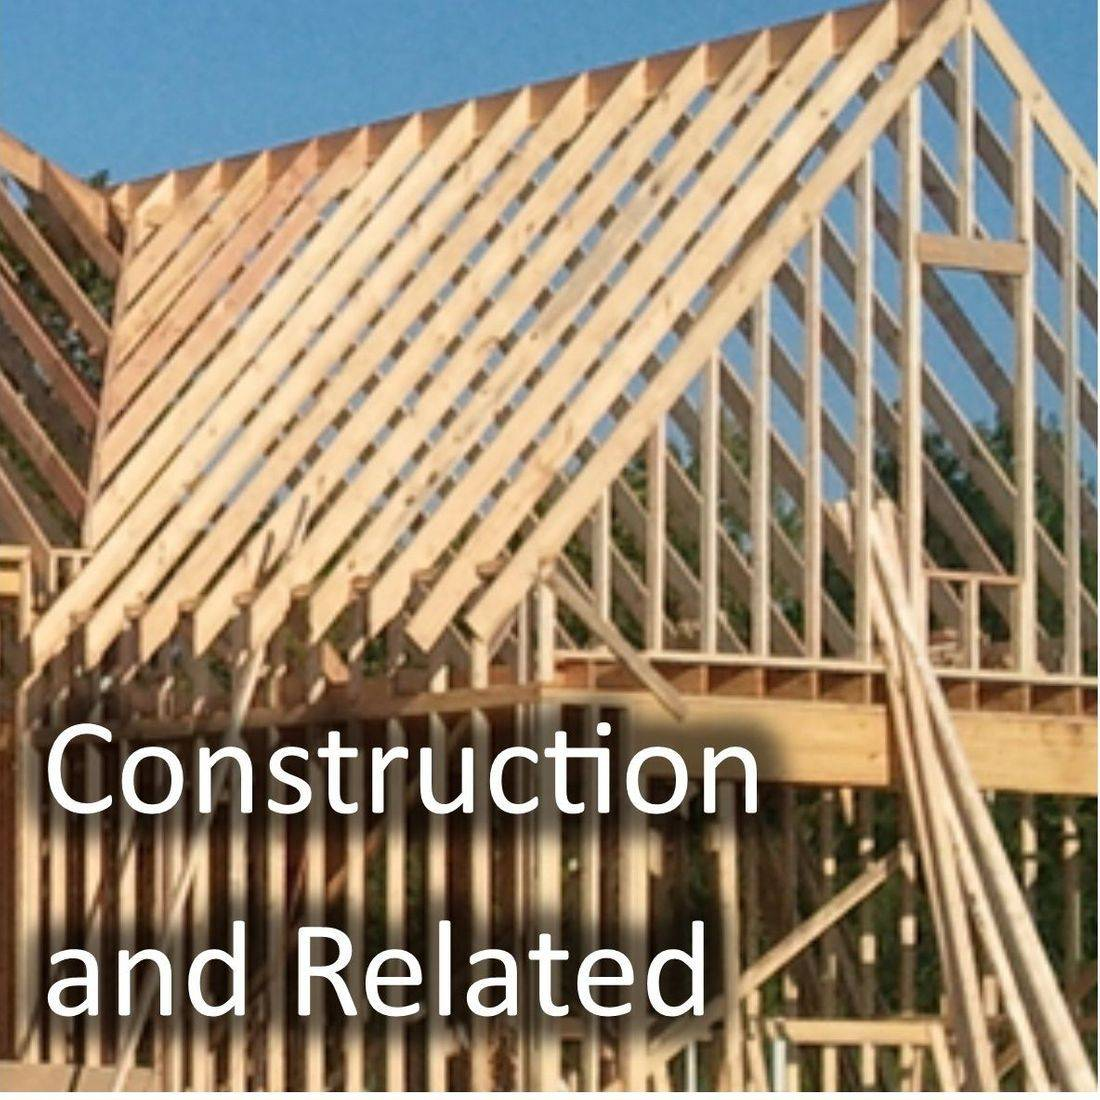 Construction and Home Building